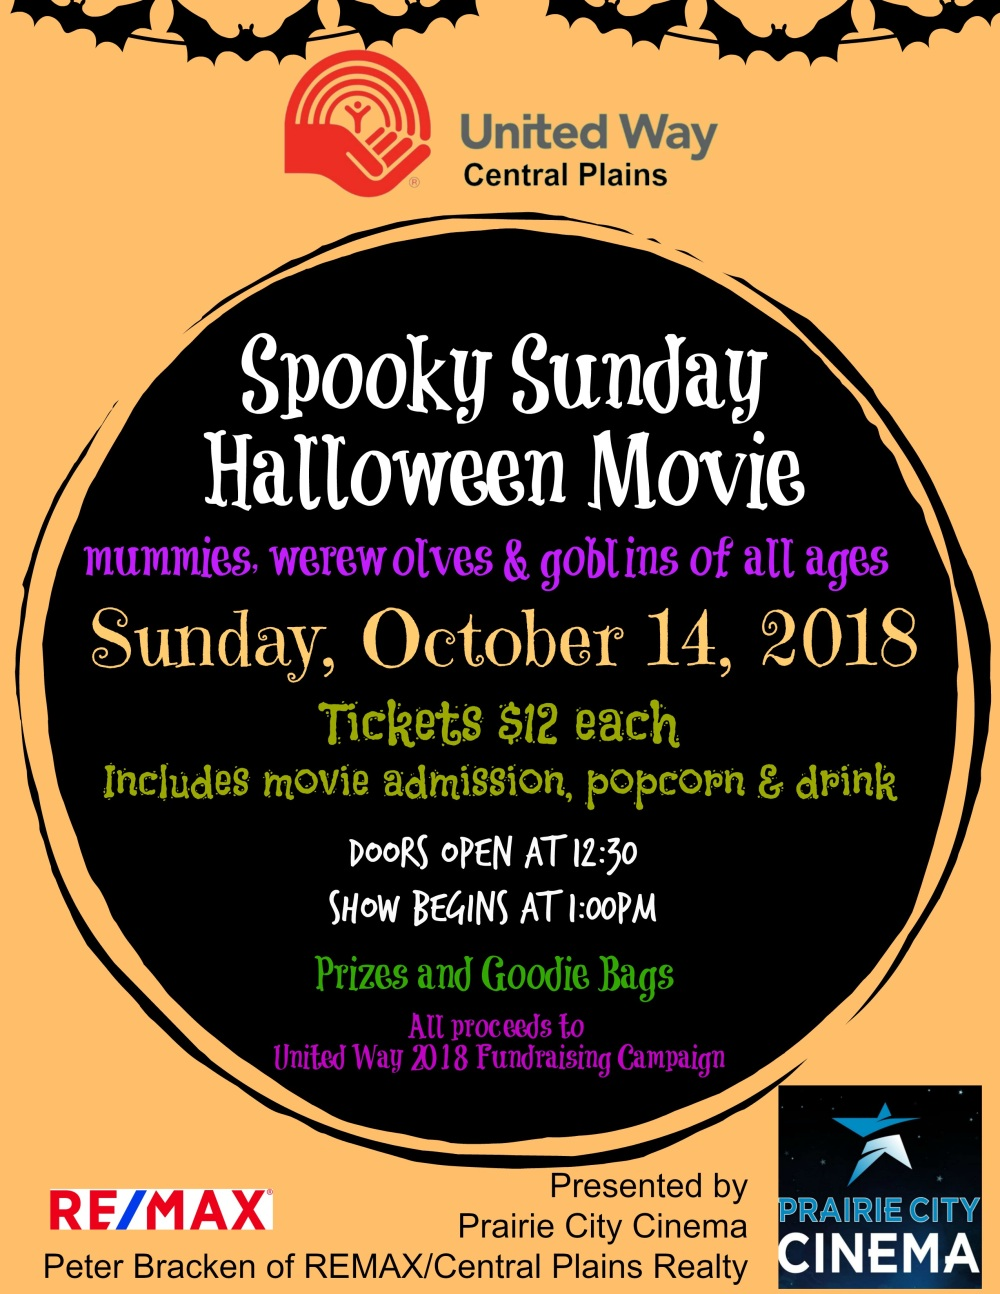 Spooky Sunday Halloween Movie Poster